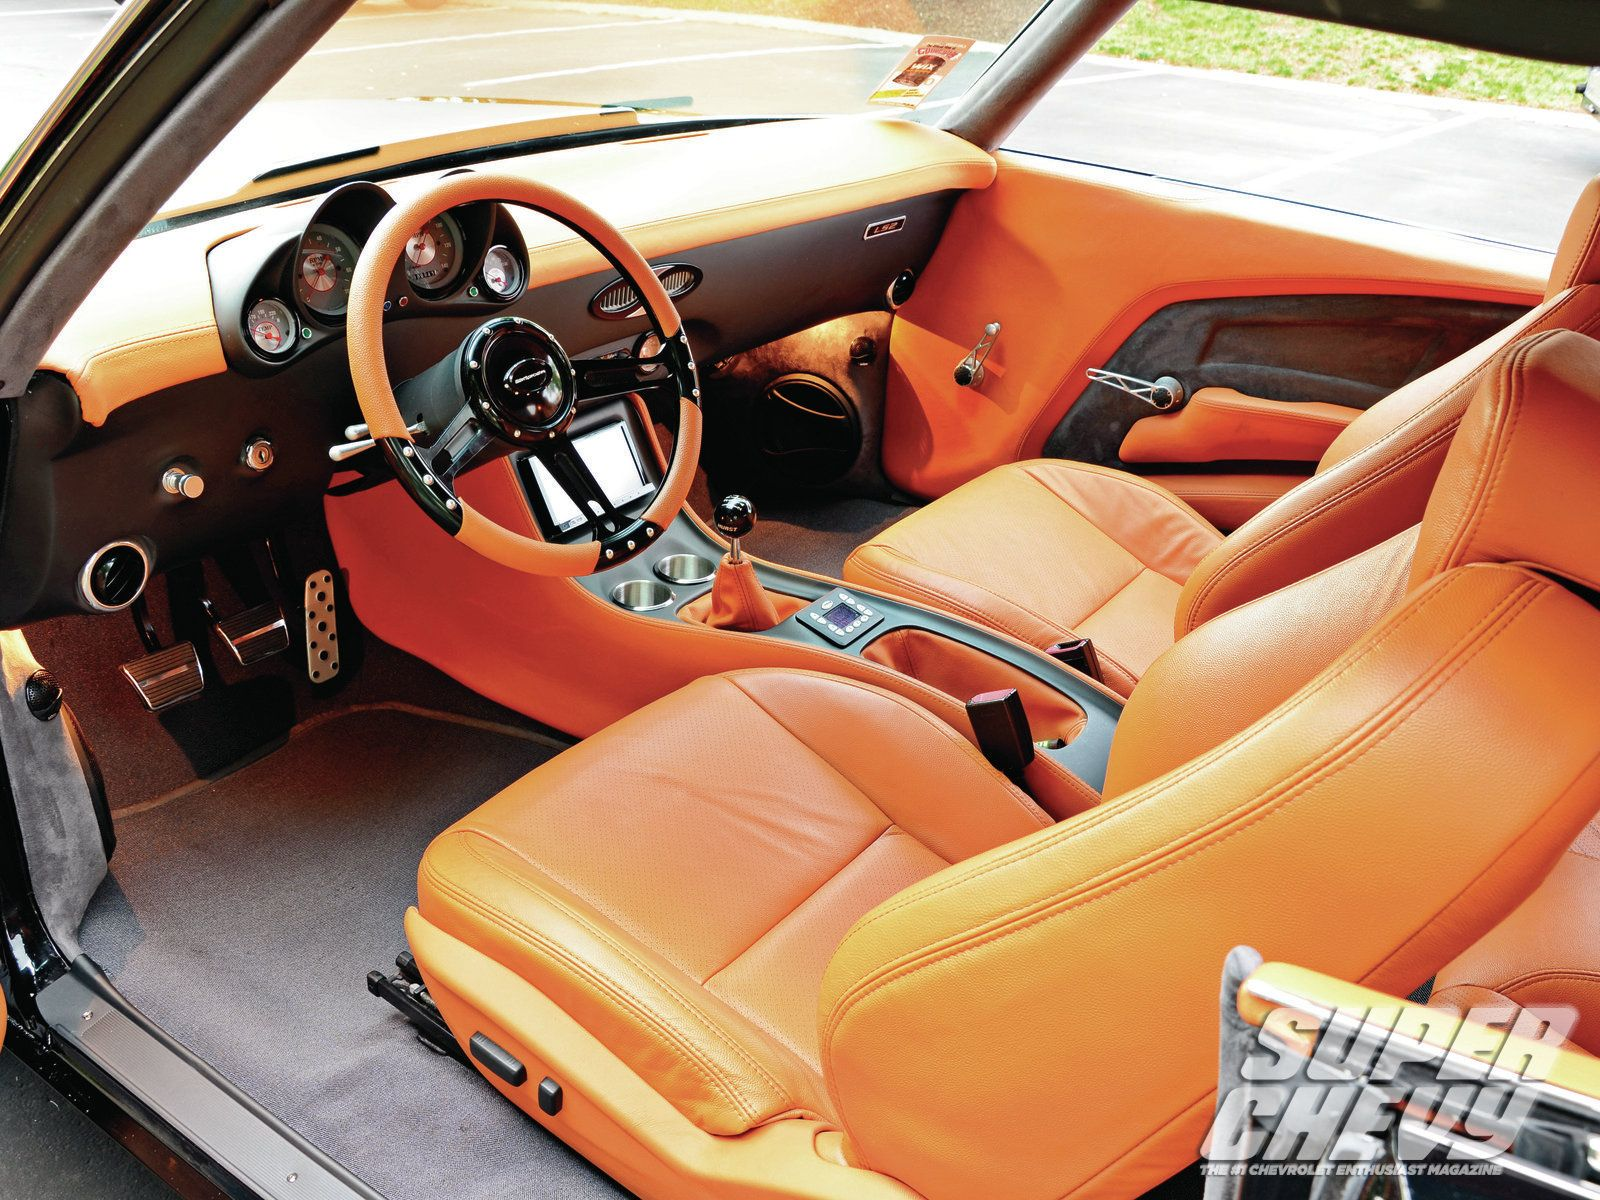 Exceptional 1970 Chevrolet Chevelle Ss Interior Photo 6 Custom Dash And Console Door  Panels Brown Orange